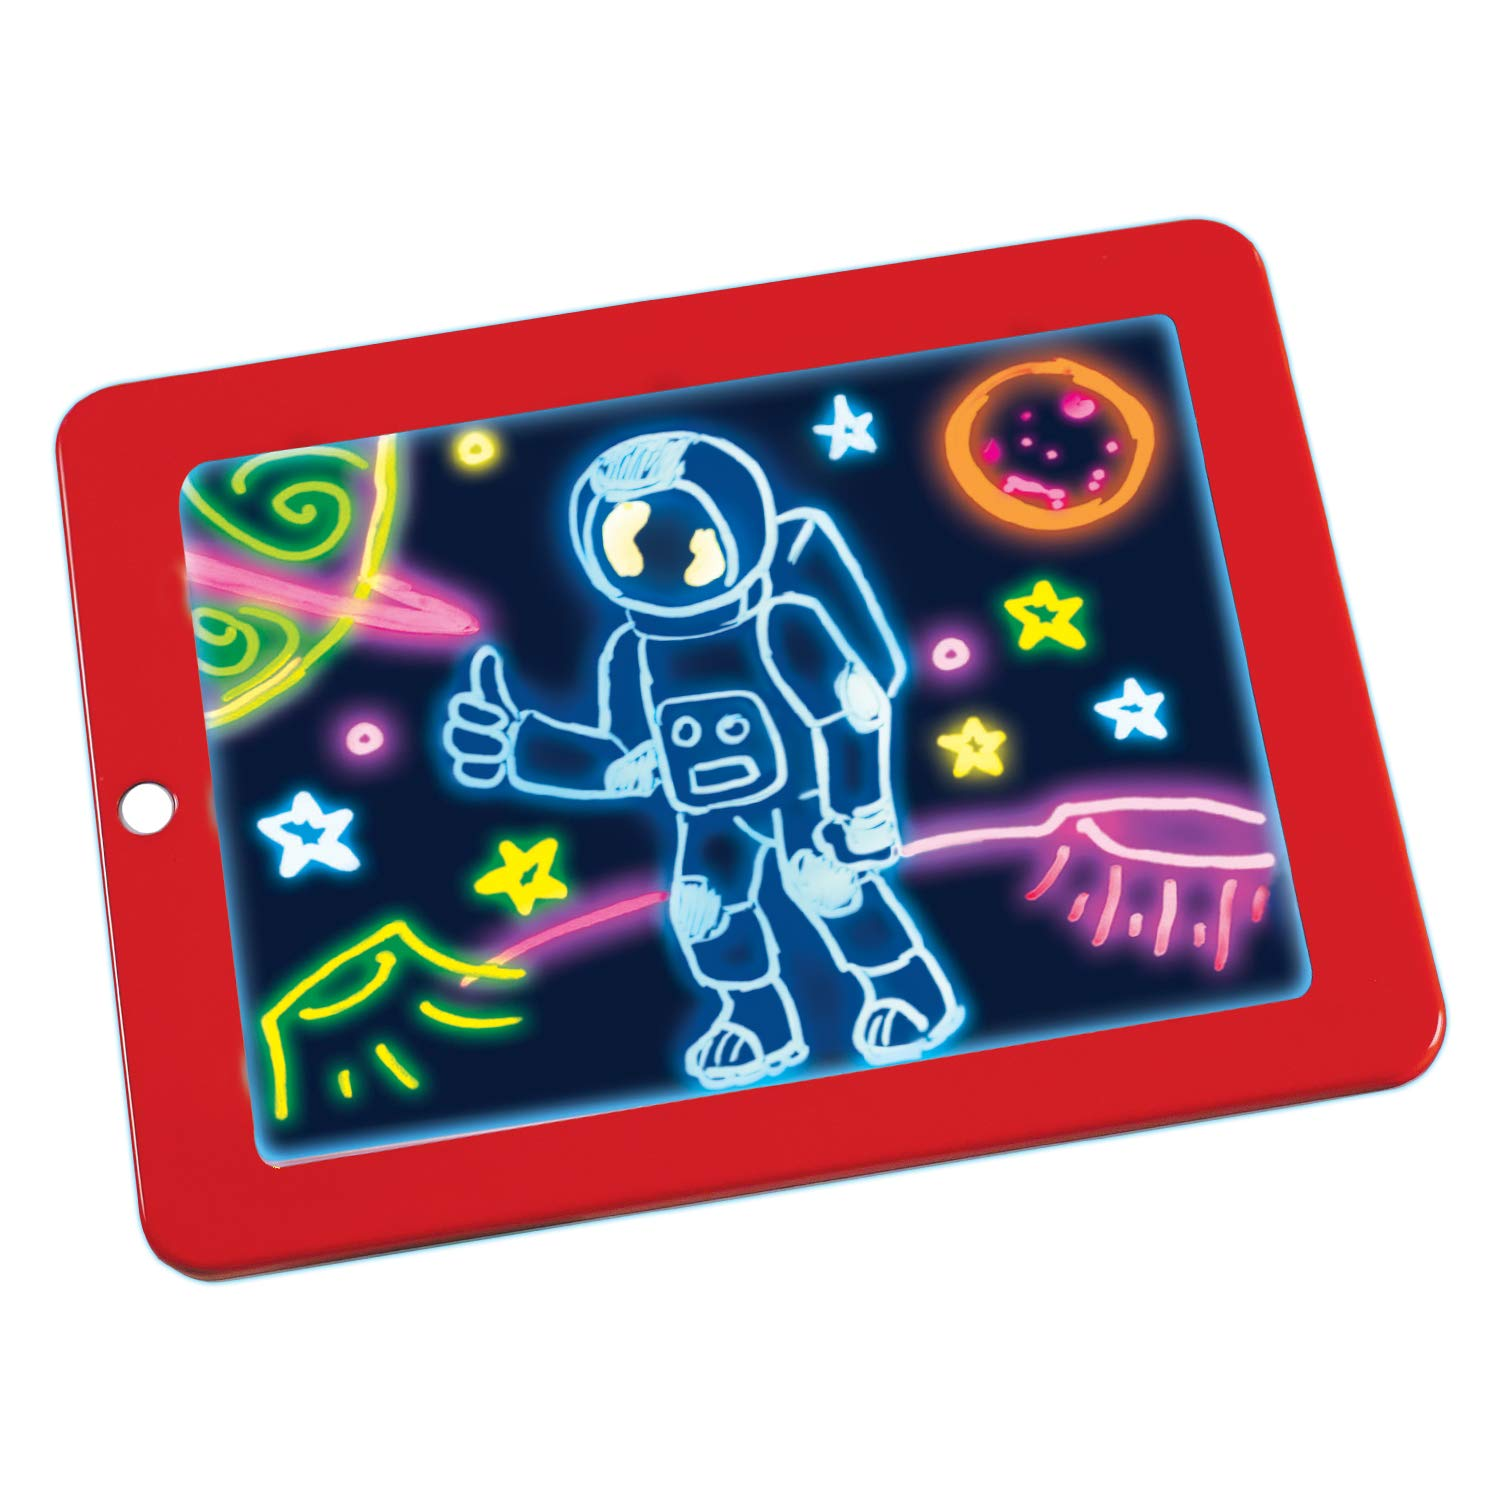 Magic Pad Bonus Pack Includes 4 Dual Side Markets Dry Eraser Fun Guide 42 Stencils Glow Boost Card Ontel Bonus Magic Pad Deluxe Light Up LED Drawing Tablet with Extras and Carrying Case.